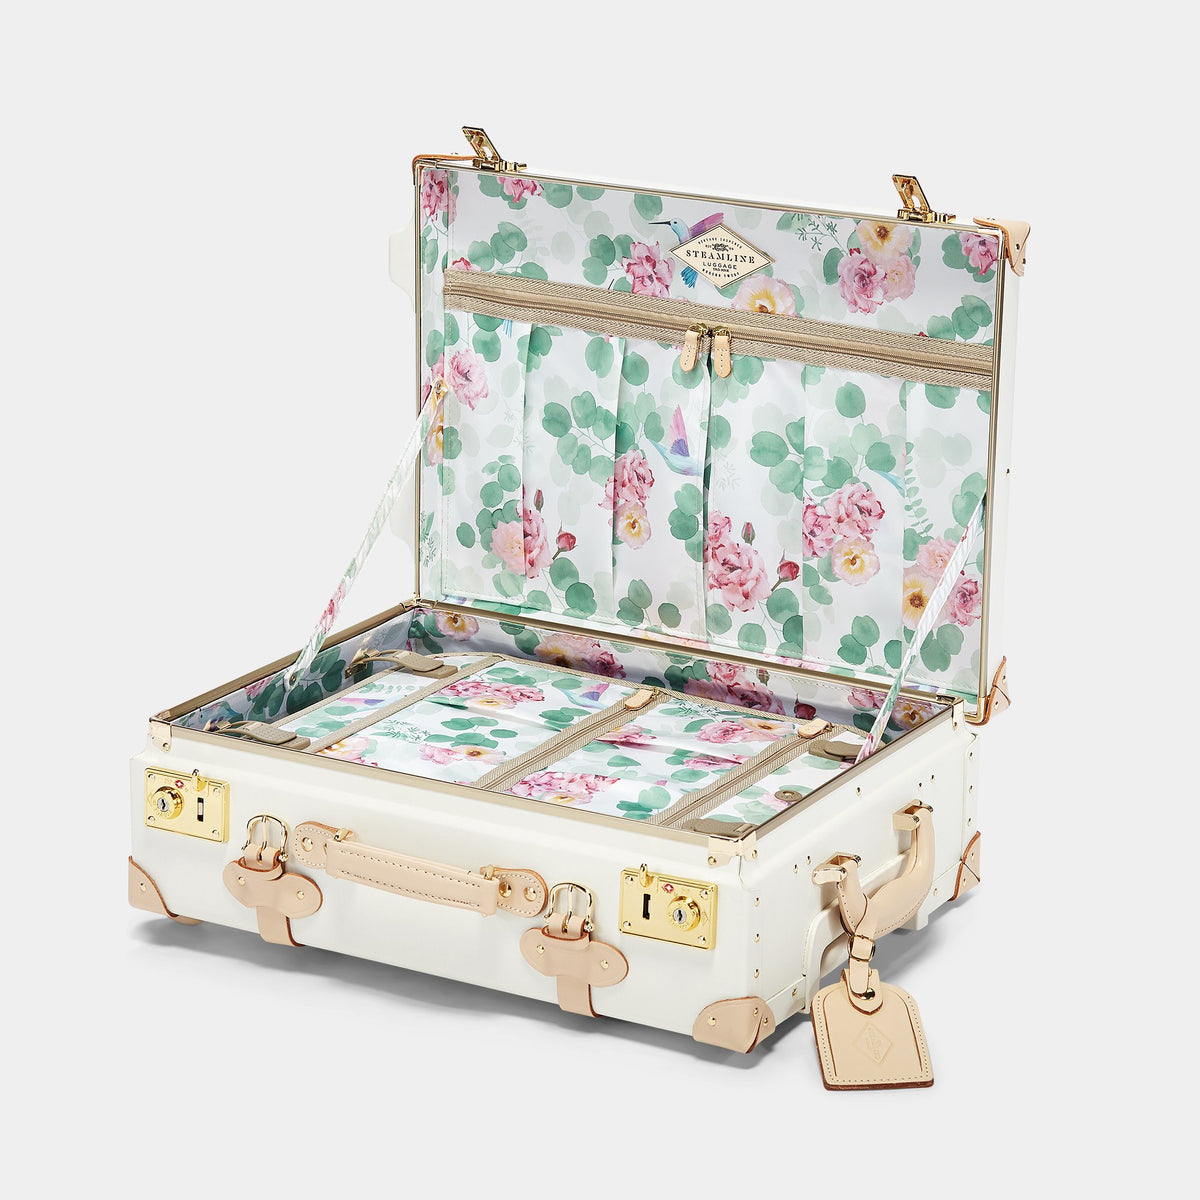 The Sweetheart Carryon - Vintage-Inspired Luggage - Interior Front